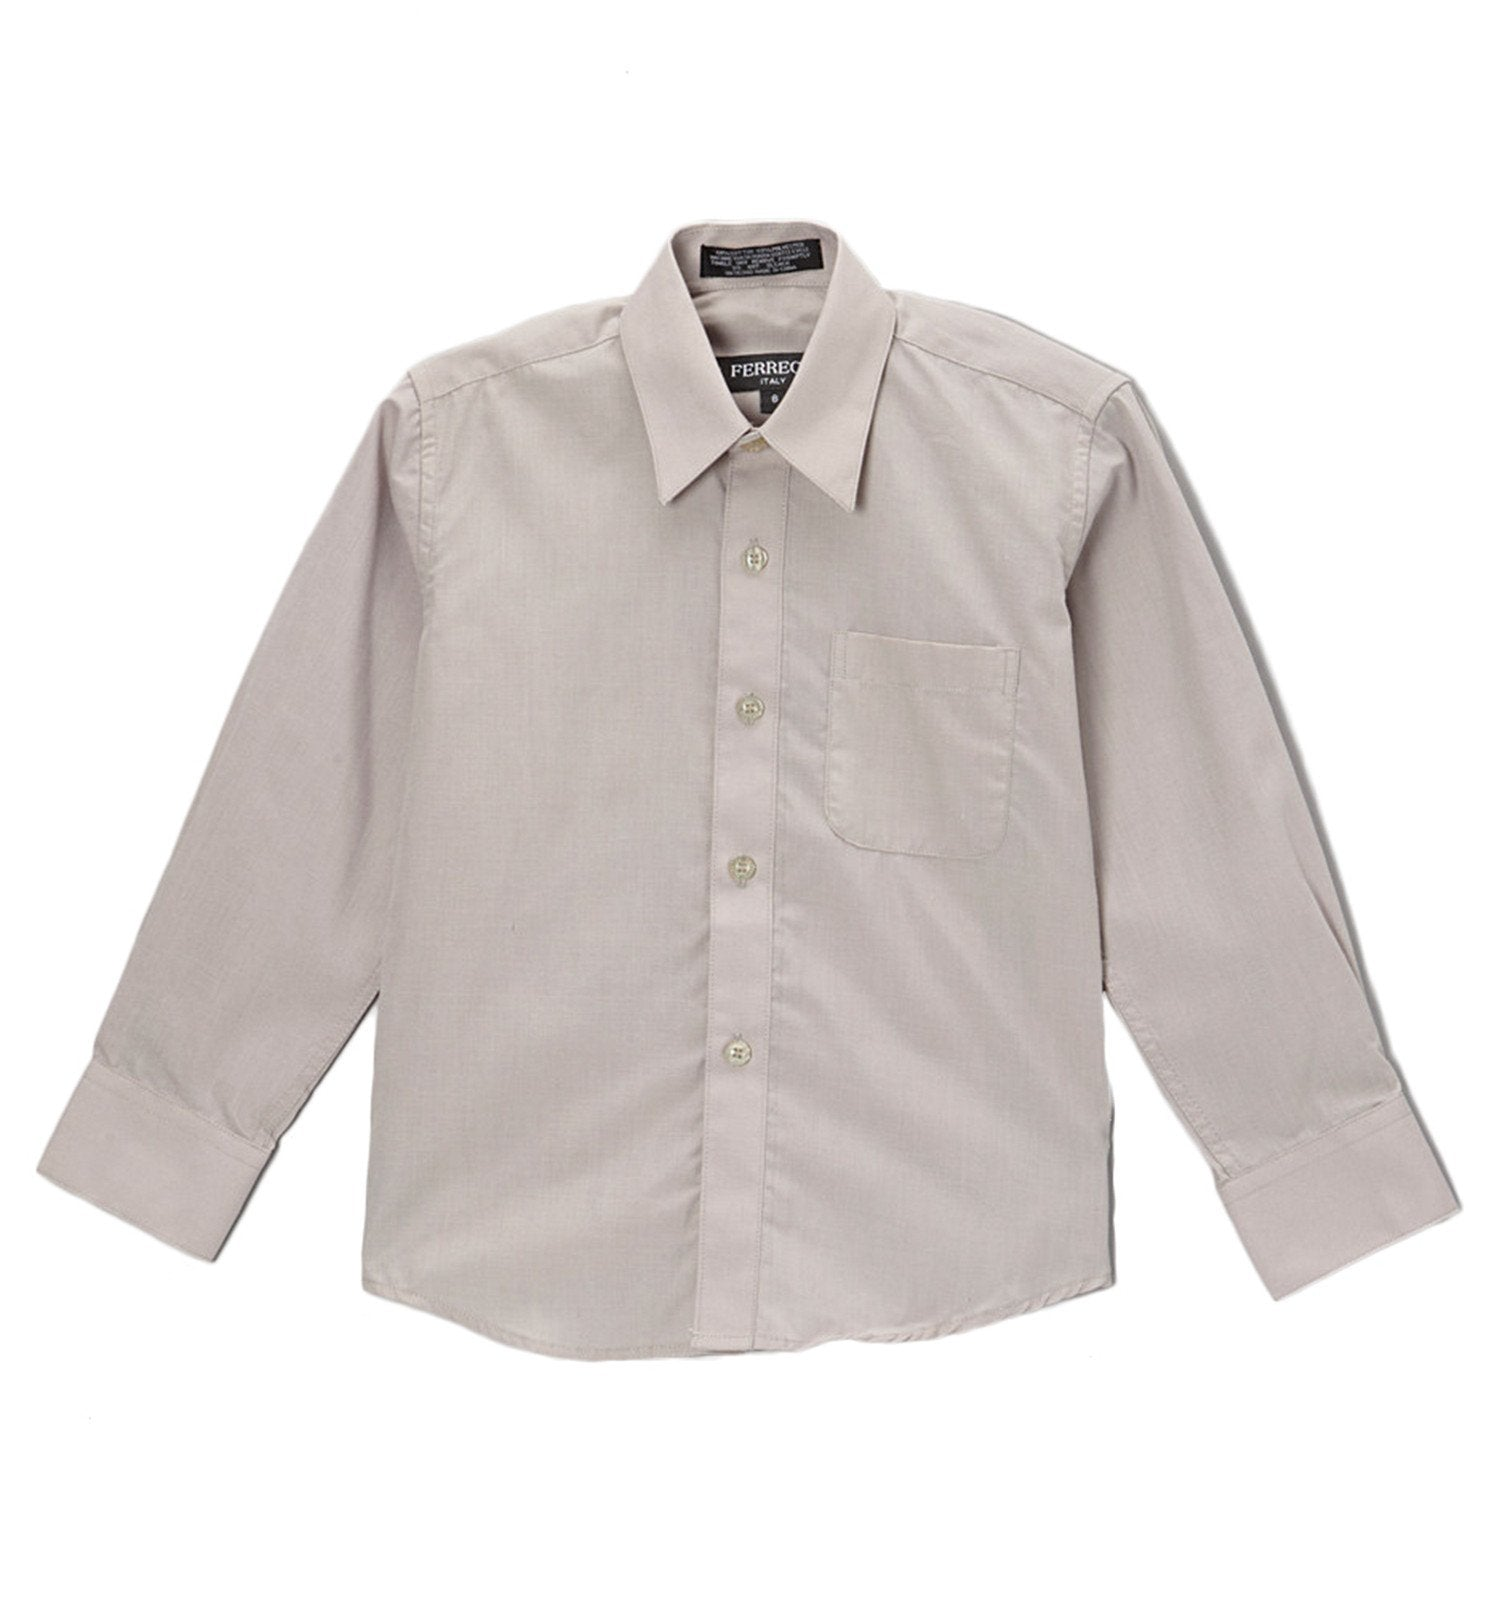 Premium Solid Cotton Blend Light Grey Dress Shirt - Giorgio's Menswear